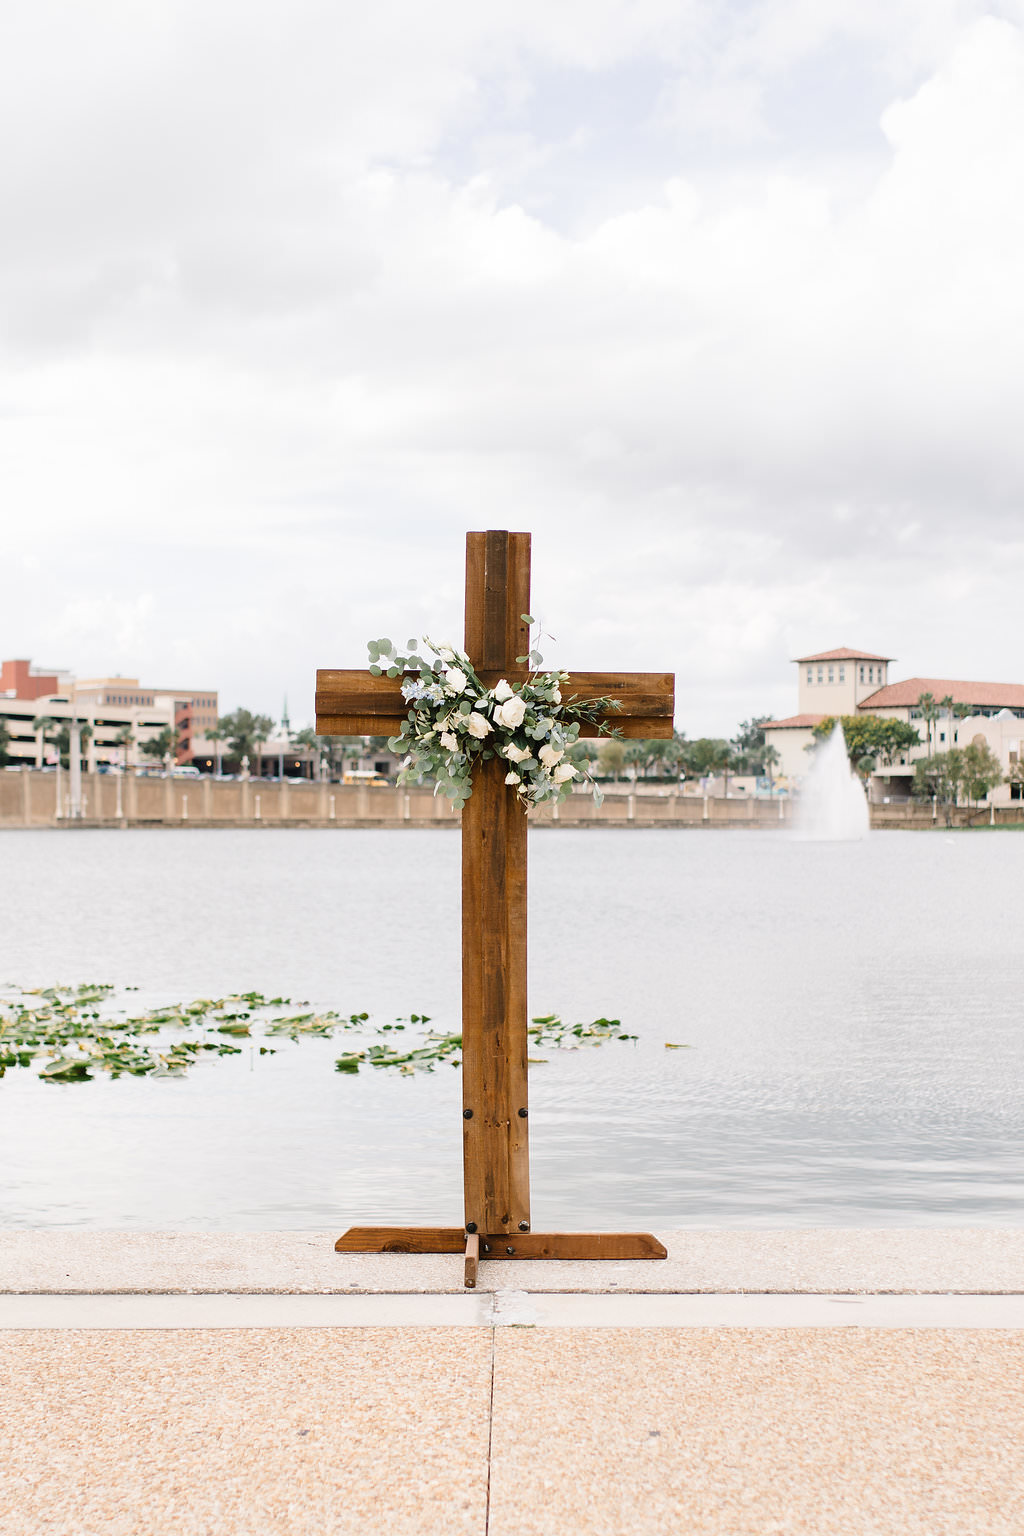 Tampa Bay Lakefront Wedding Ceremony Decor, Wooden Cross with Greenery and White Florals   Lakeland Wedding Venue Lake Mirror Amphitheatre   Wedding Planner Love Lee Lane